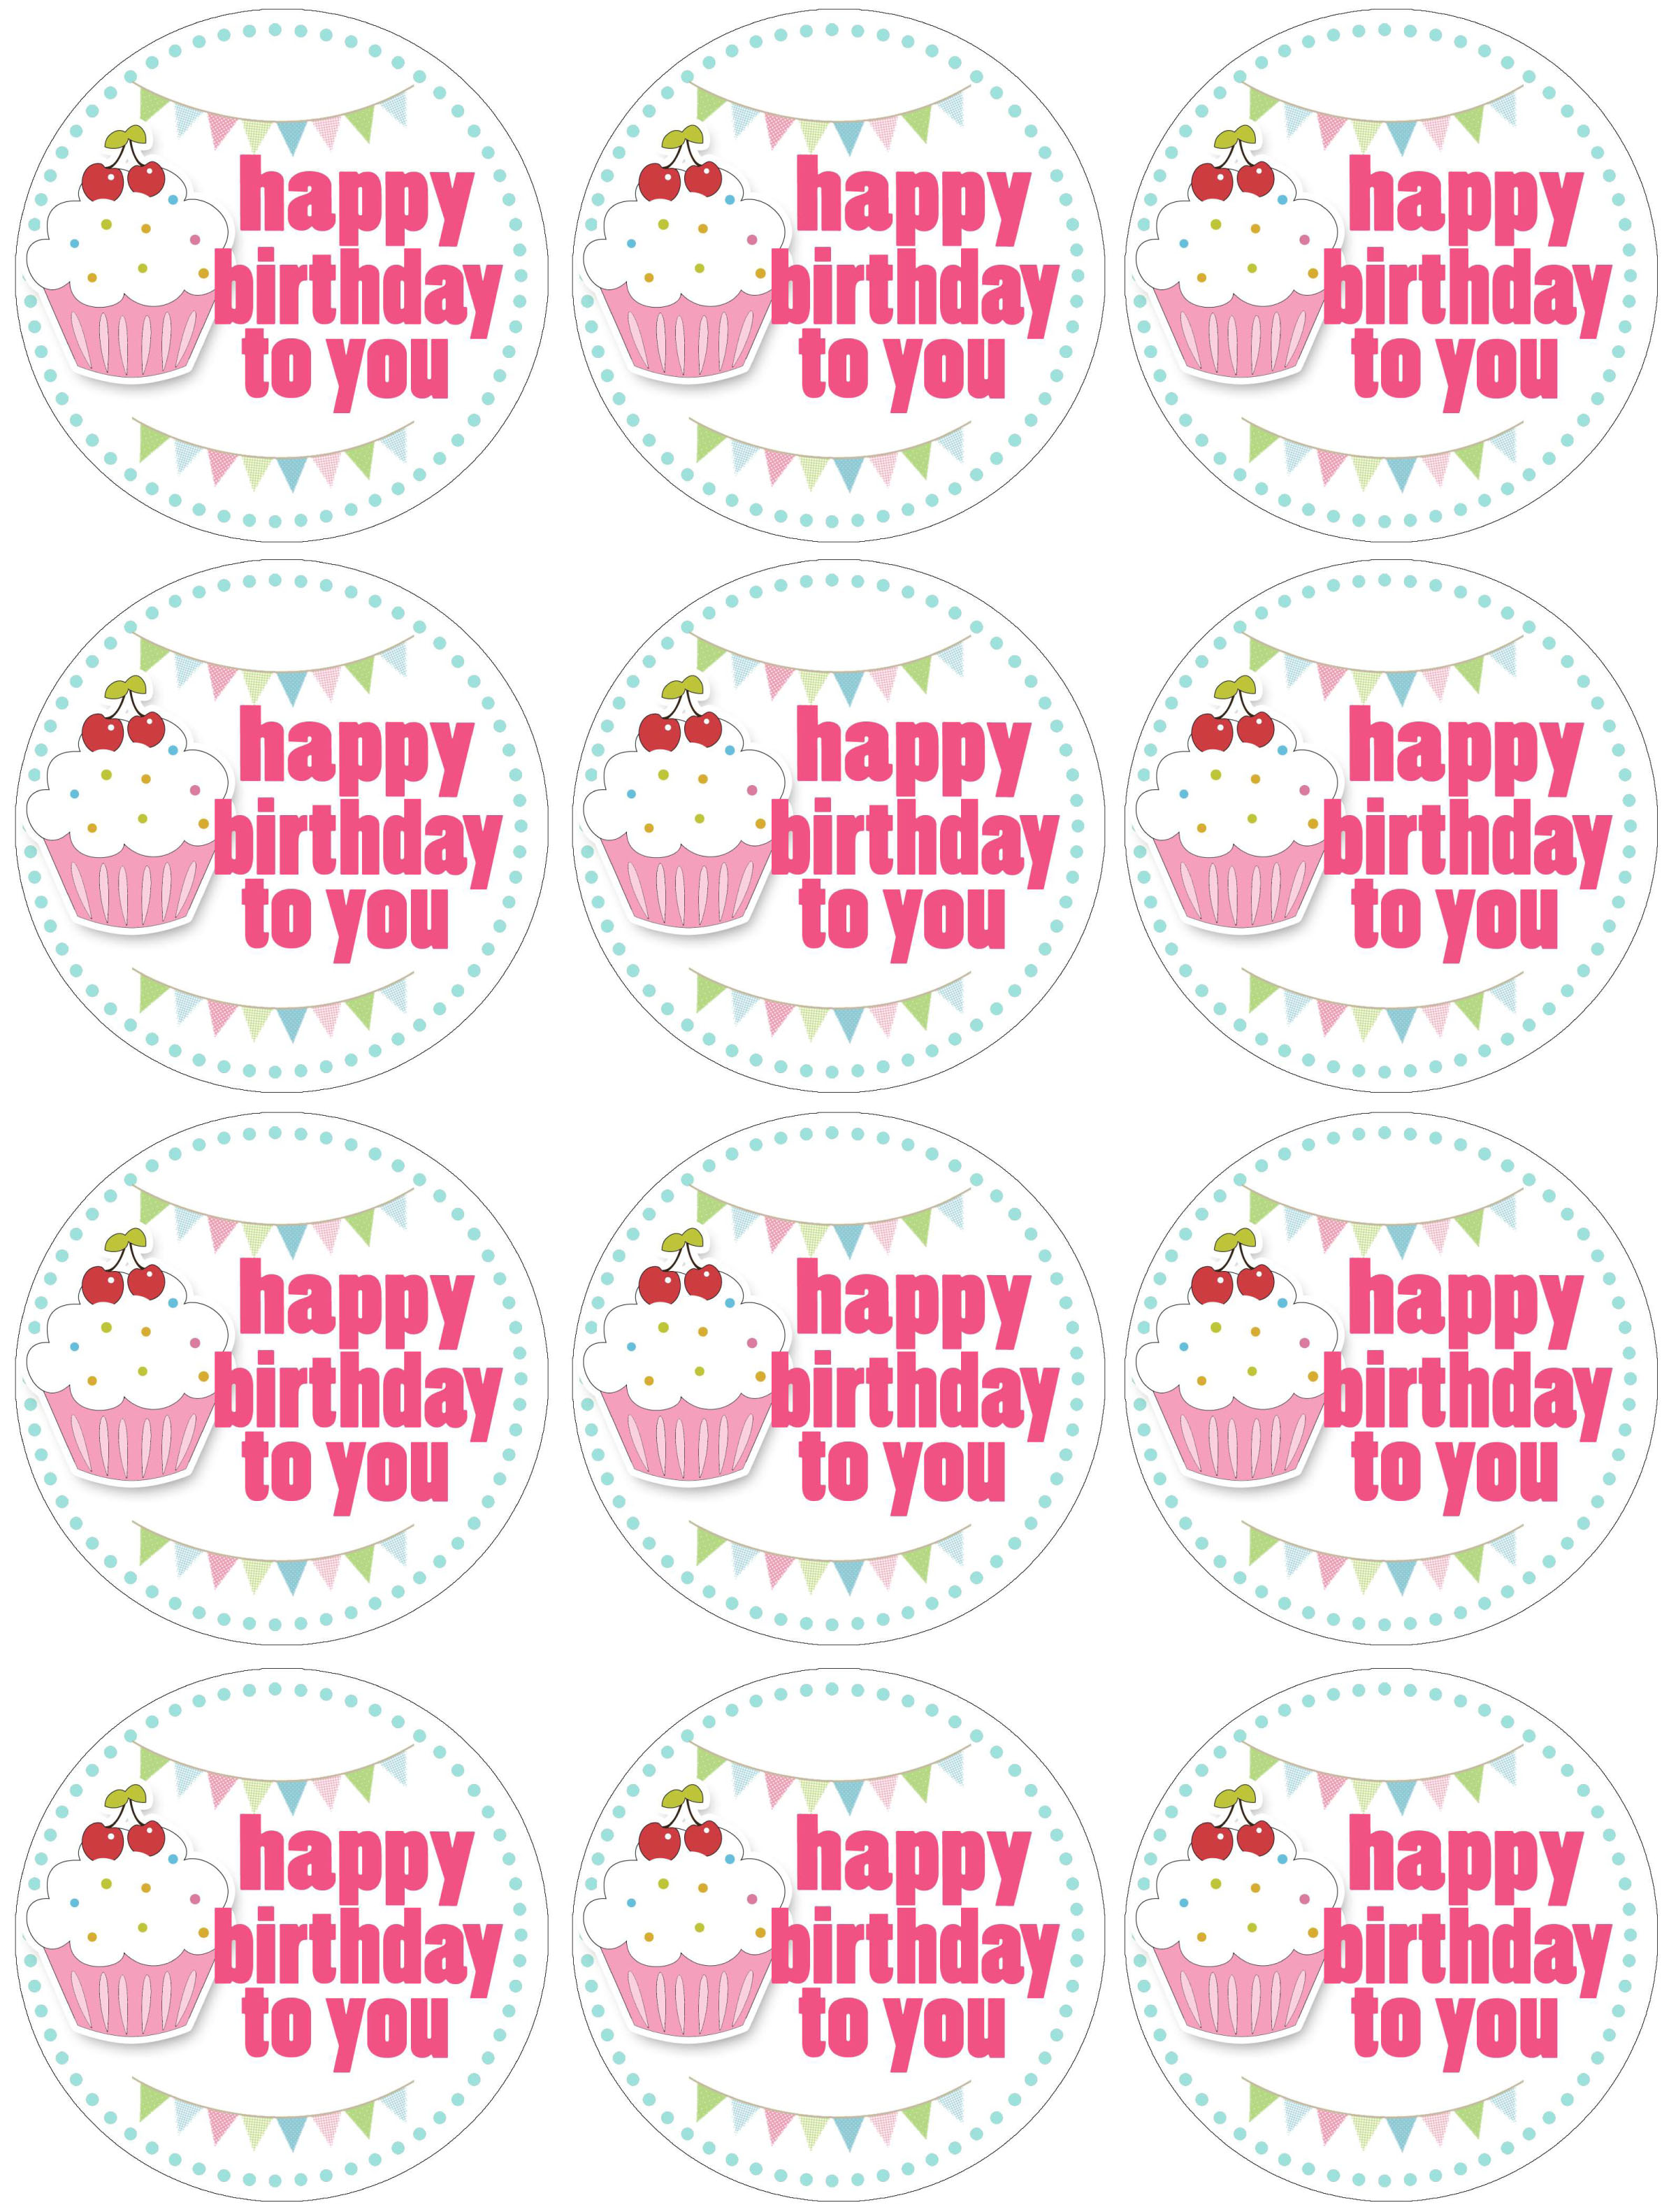 4 Images of Free Printable Birthday Cake Topper